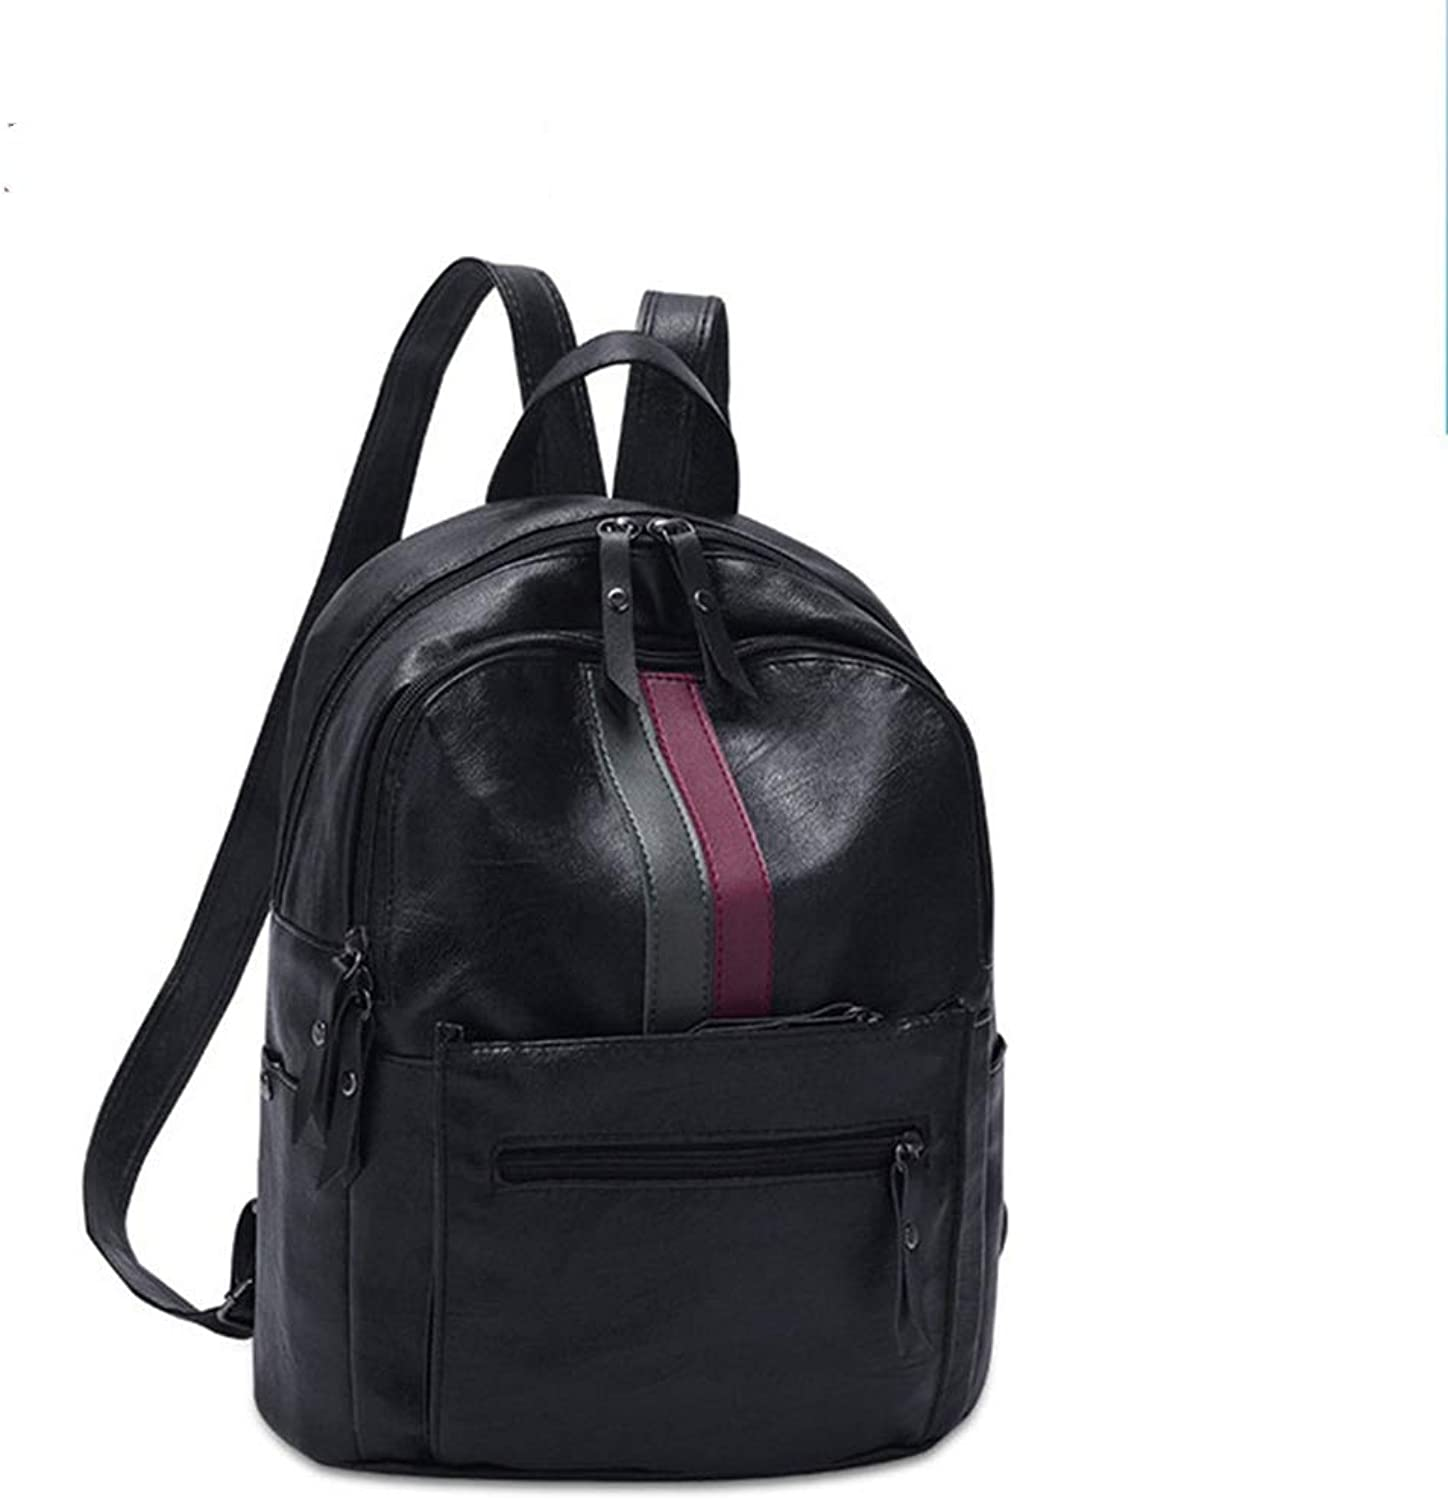 JJSSGJBB Student Backpack Women Fashion Backpacks Soft PU Leather Travel Rucksack Female High Capacity Shoulder School Bags